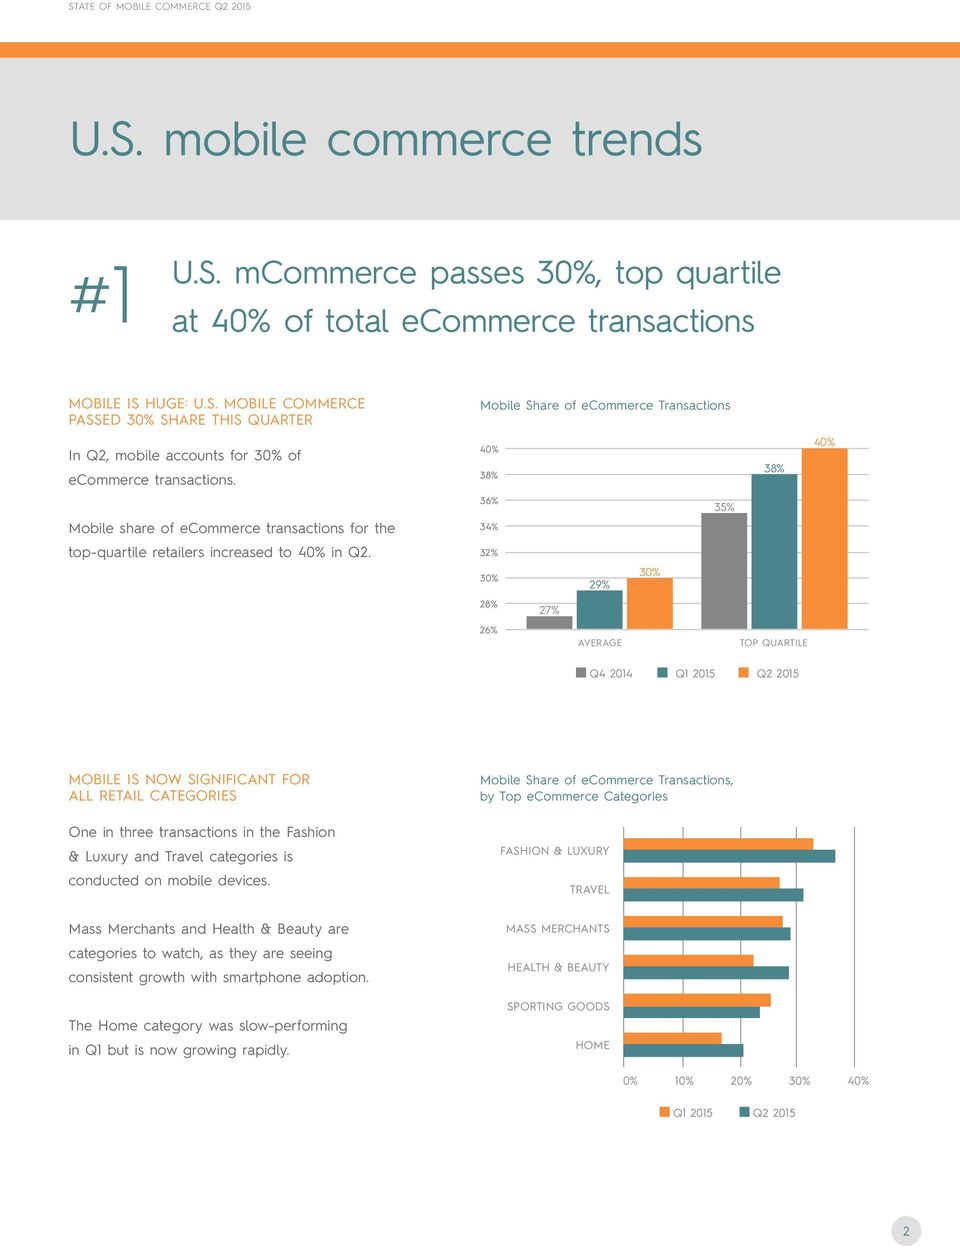 Mobile Share of ecommerce Transactions 40% 40% 38% 38% 36% 35% 34% 32% 30% 29% 30% 28% 27% 26% AVERAGE TOP QUARTILE Q4 2014 Q1 2015 Q2 2015 MOBILE IS NOW SIGNIFICANT FOR ALL RETAIL CATEGORIES One in